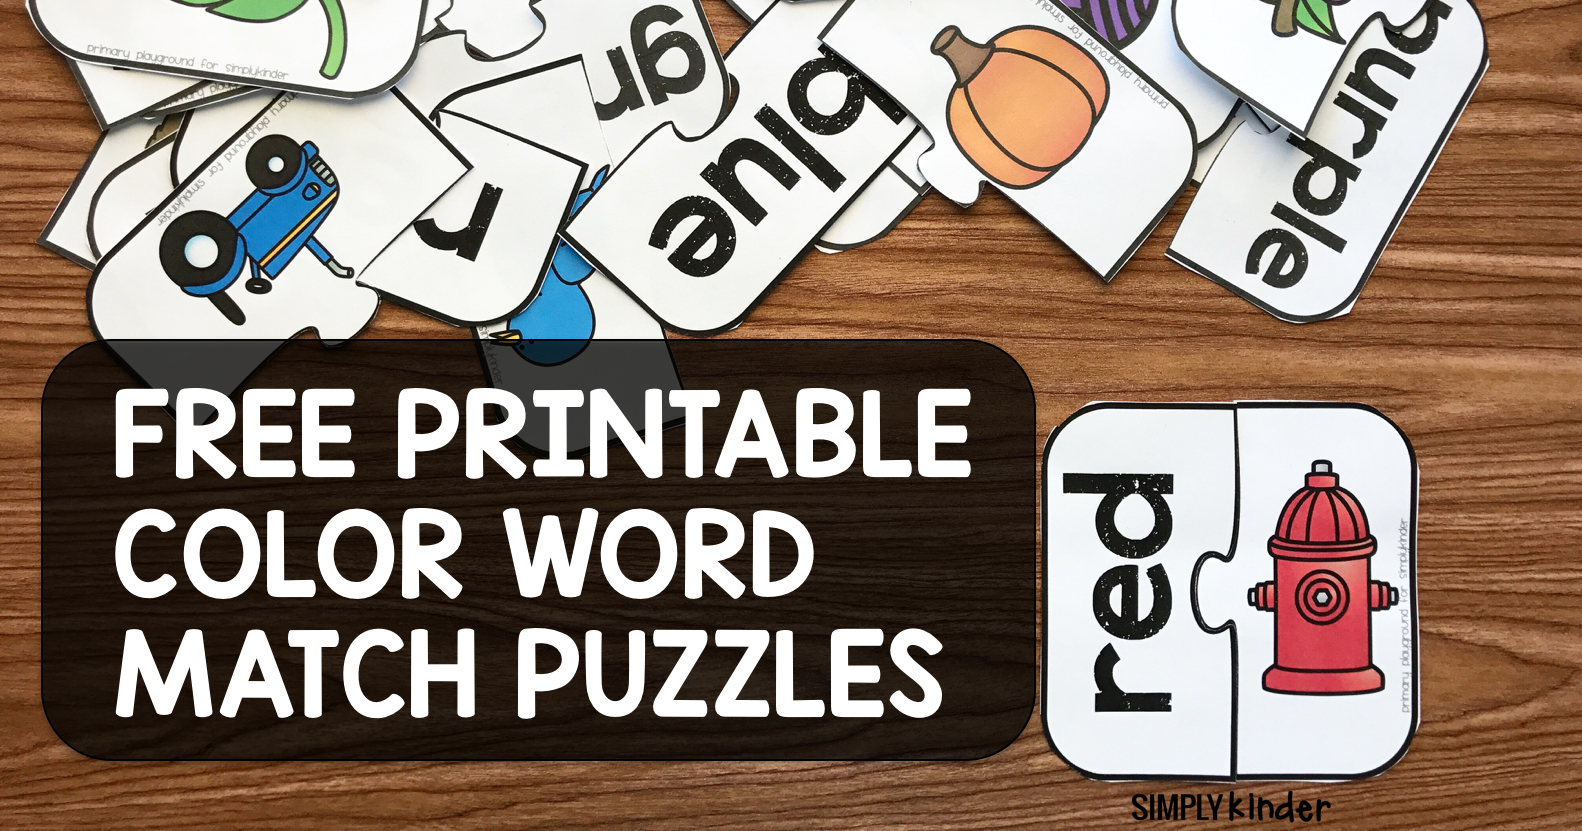 Free Printable Color Word Match Puzzles - Simply Kinder - Printable Office Puzzles